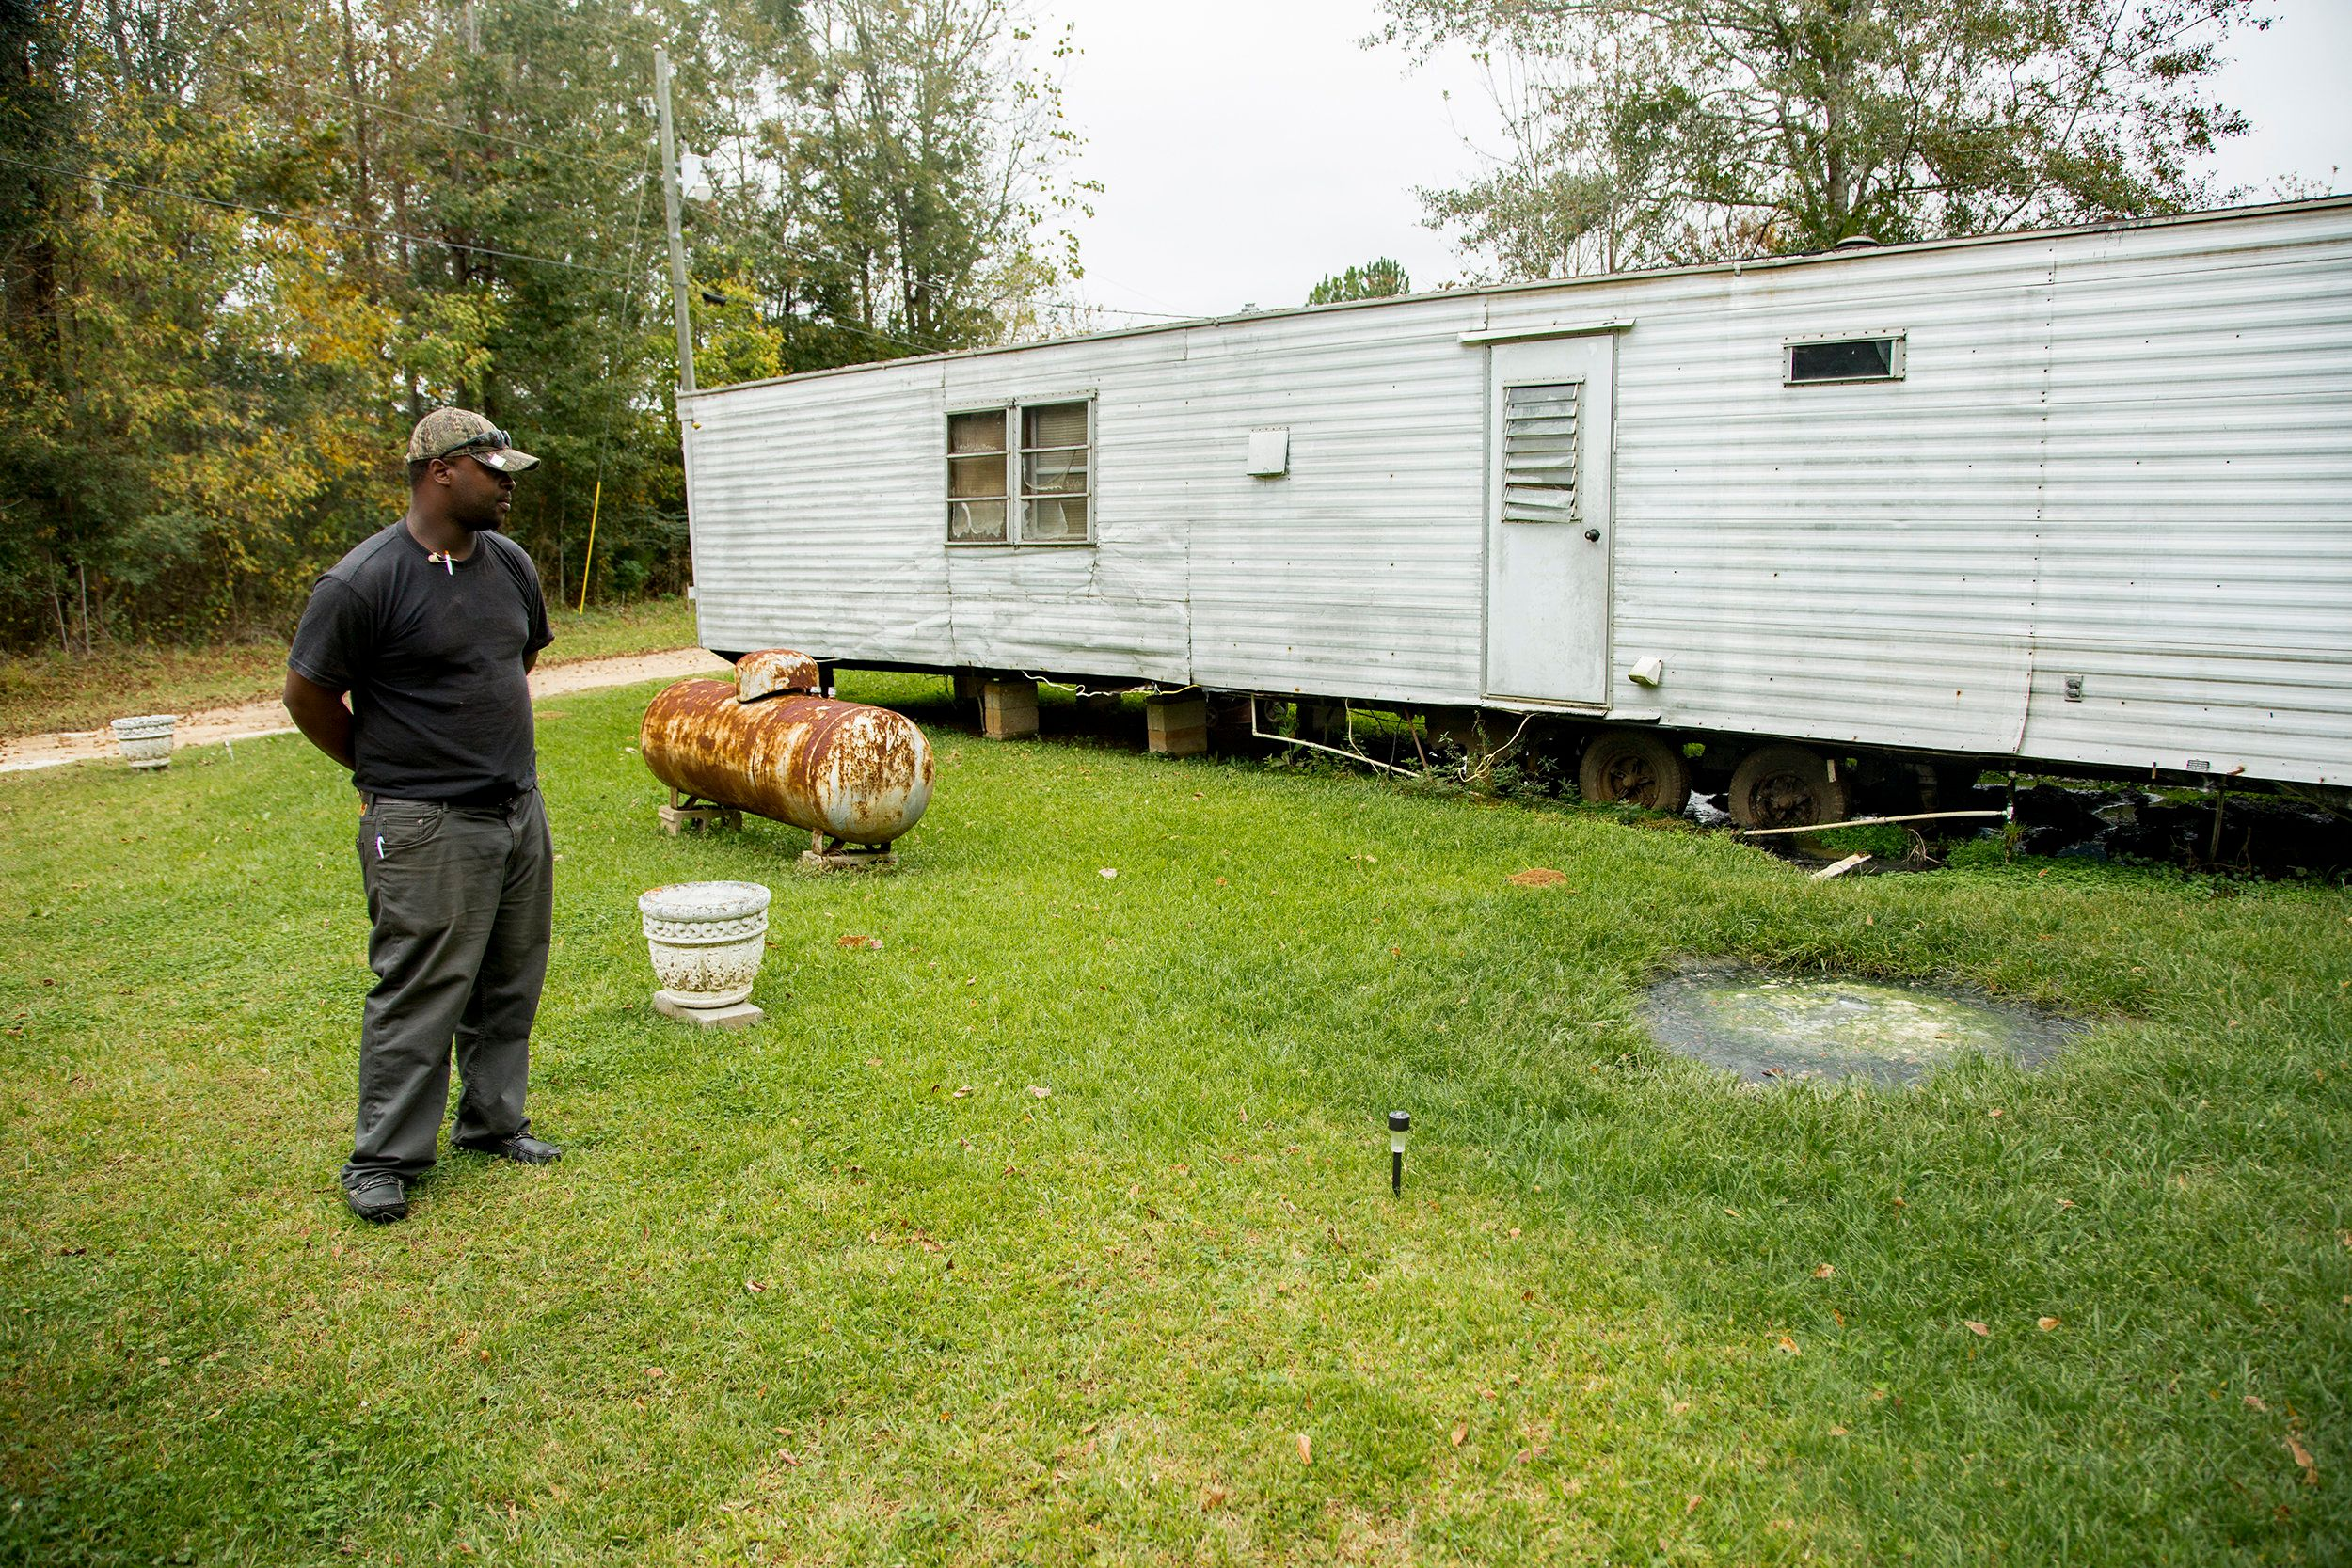 Beautiful Community Activist Aaron Thigpen Examines Raw Waste Pooling Next To A  Mobile Home.